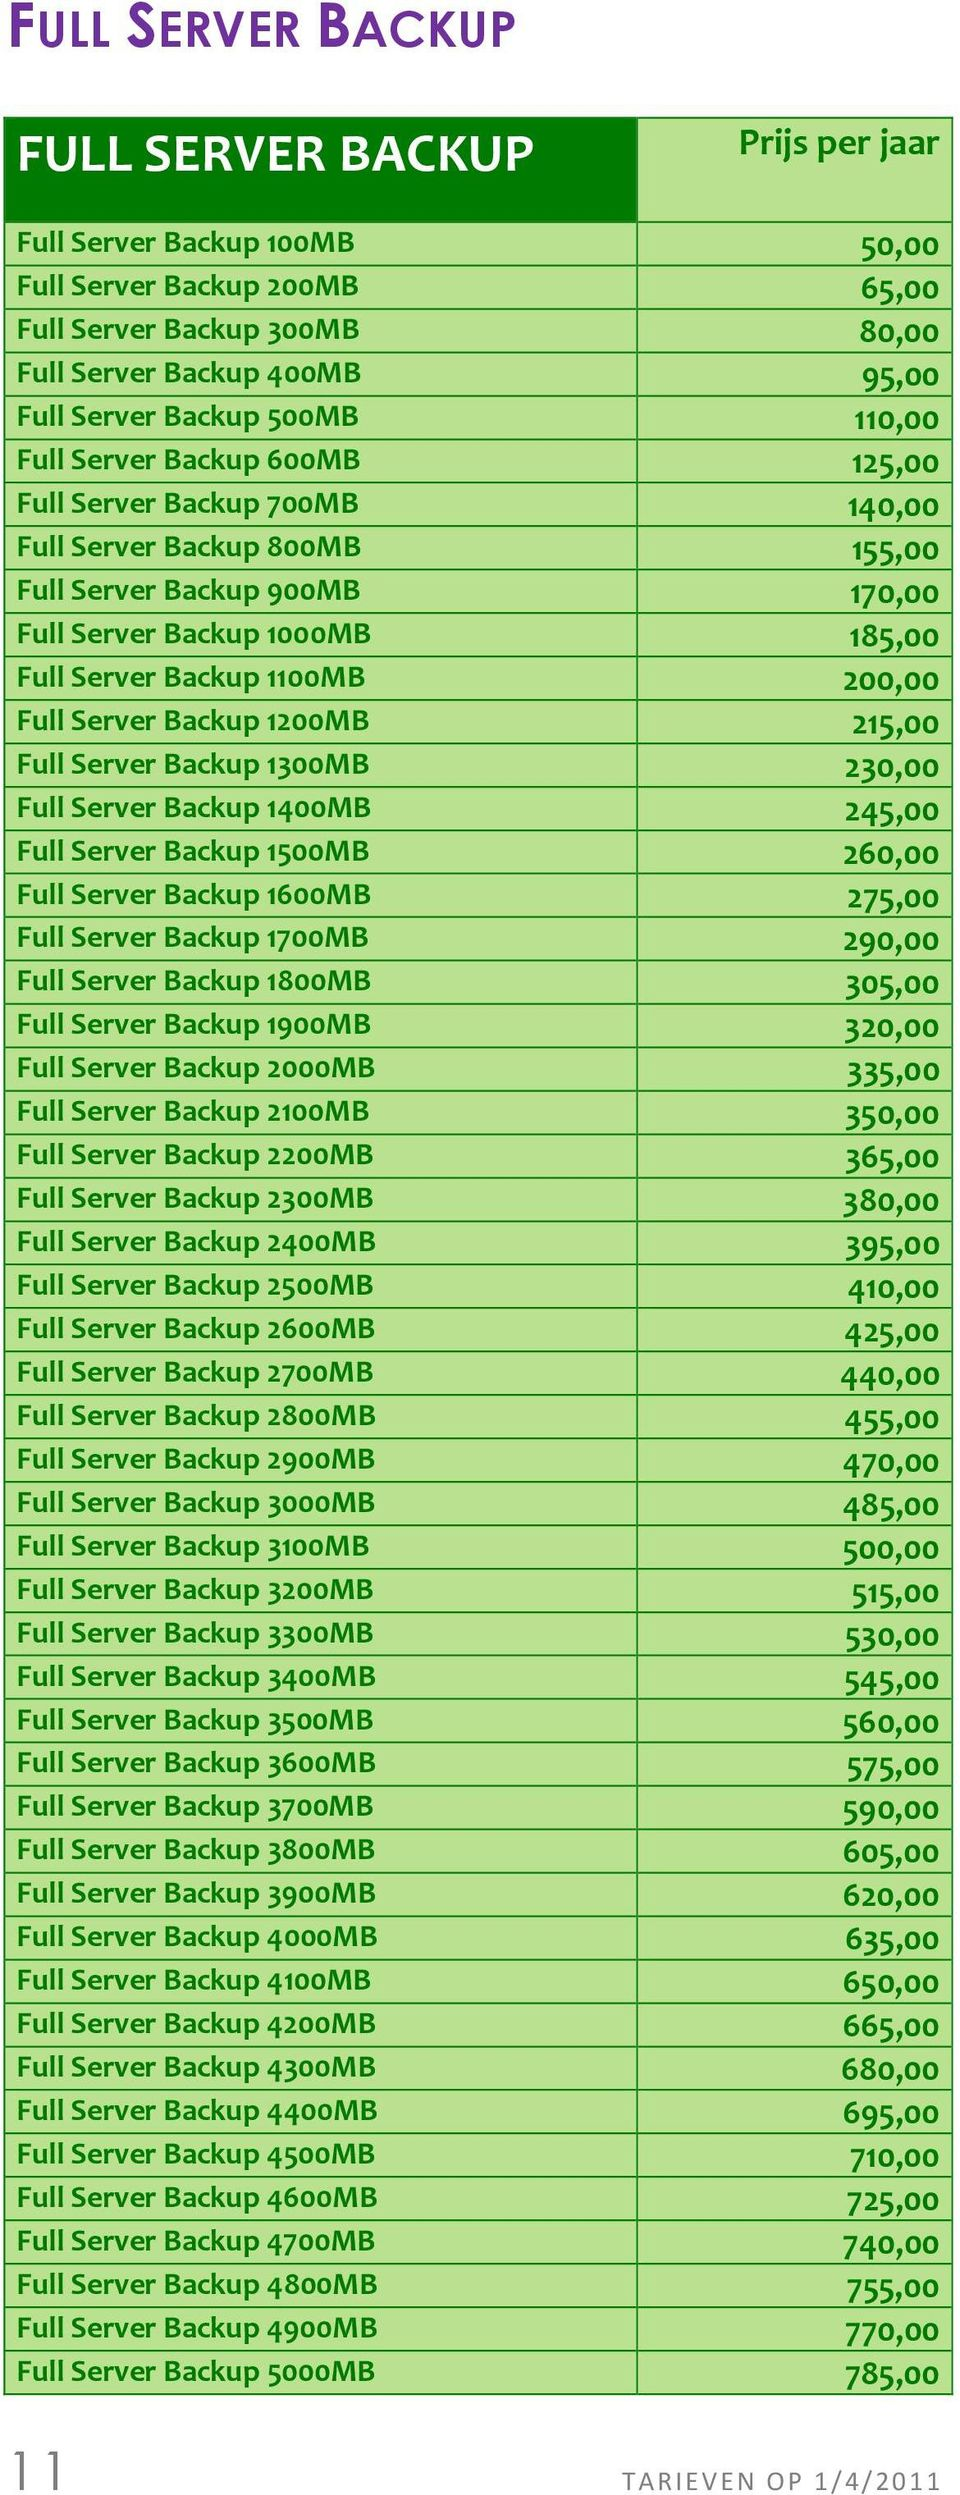 200,00 Full Server Backup 1200MB 215,00 Full Server Backup 1300MB 230,00 Full Server Backup 1400MB 245,00 Full Server Backup 1500MB 260,00 Full Server Backup 1600MB 275,00 Full Server Backup 1700MB